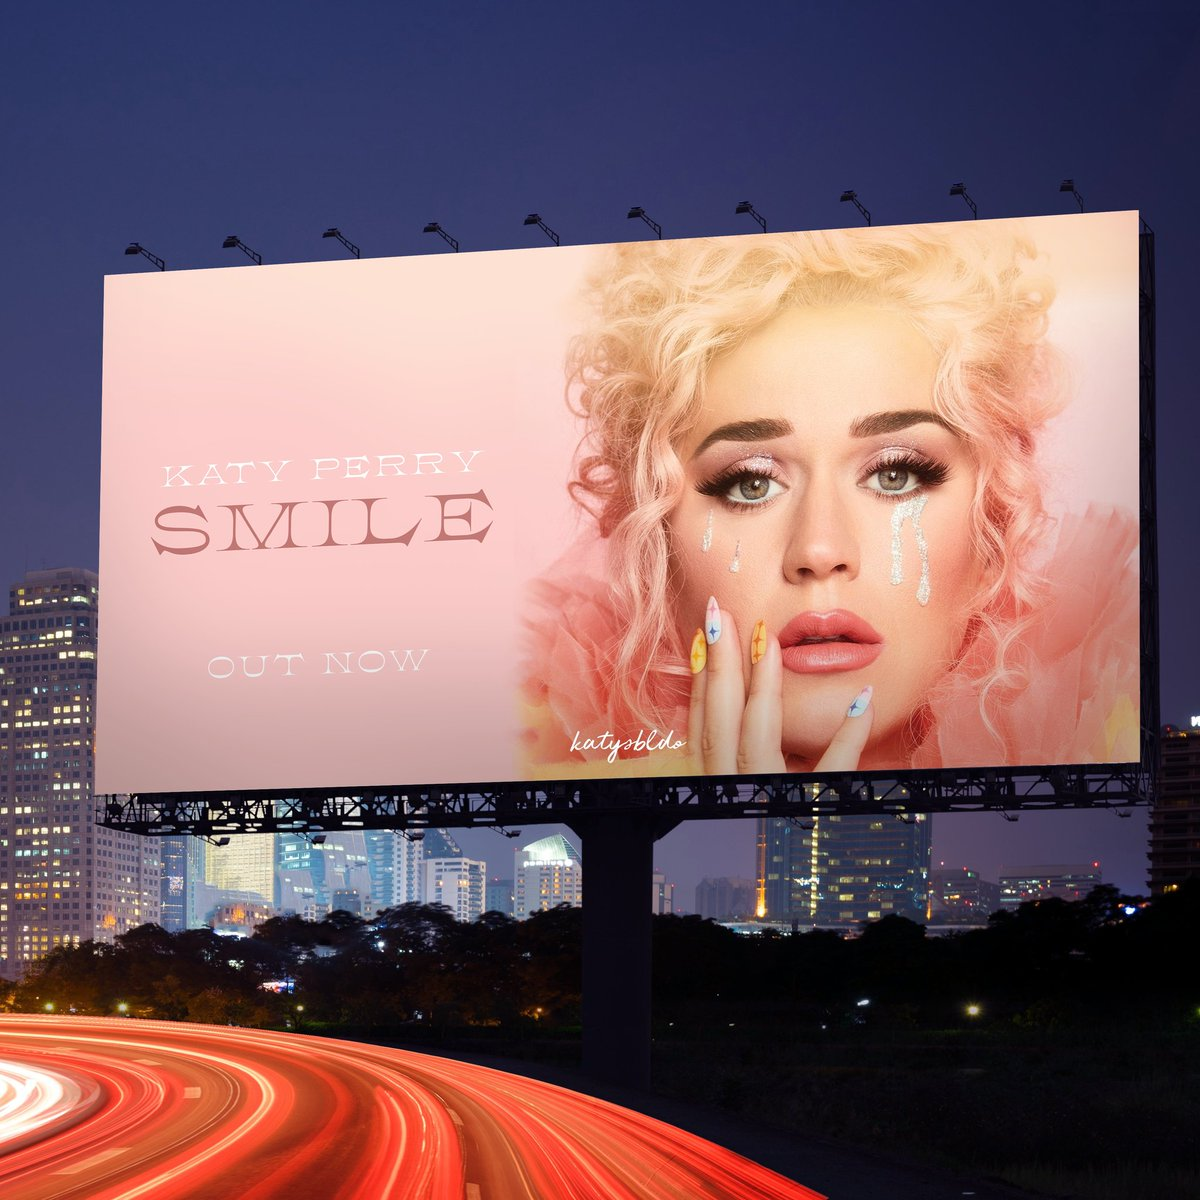 CONCEPT // Katy Perry's #Smile promo pt. 2. These may not be as good as the last ones, but I hope you all like it!  I'm open for new ideas! https://t.co/vJBRcZ7b1L